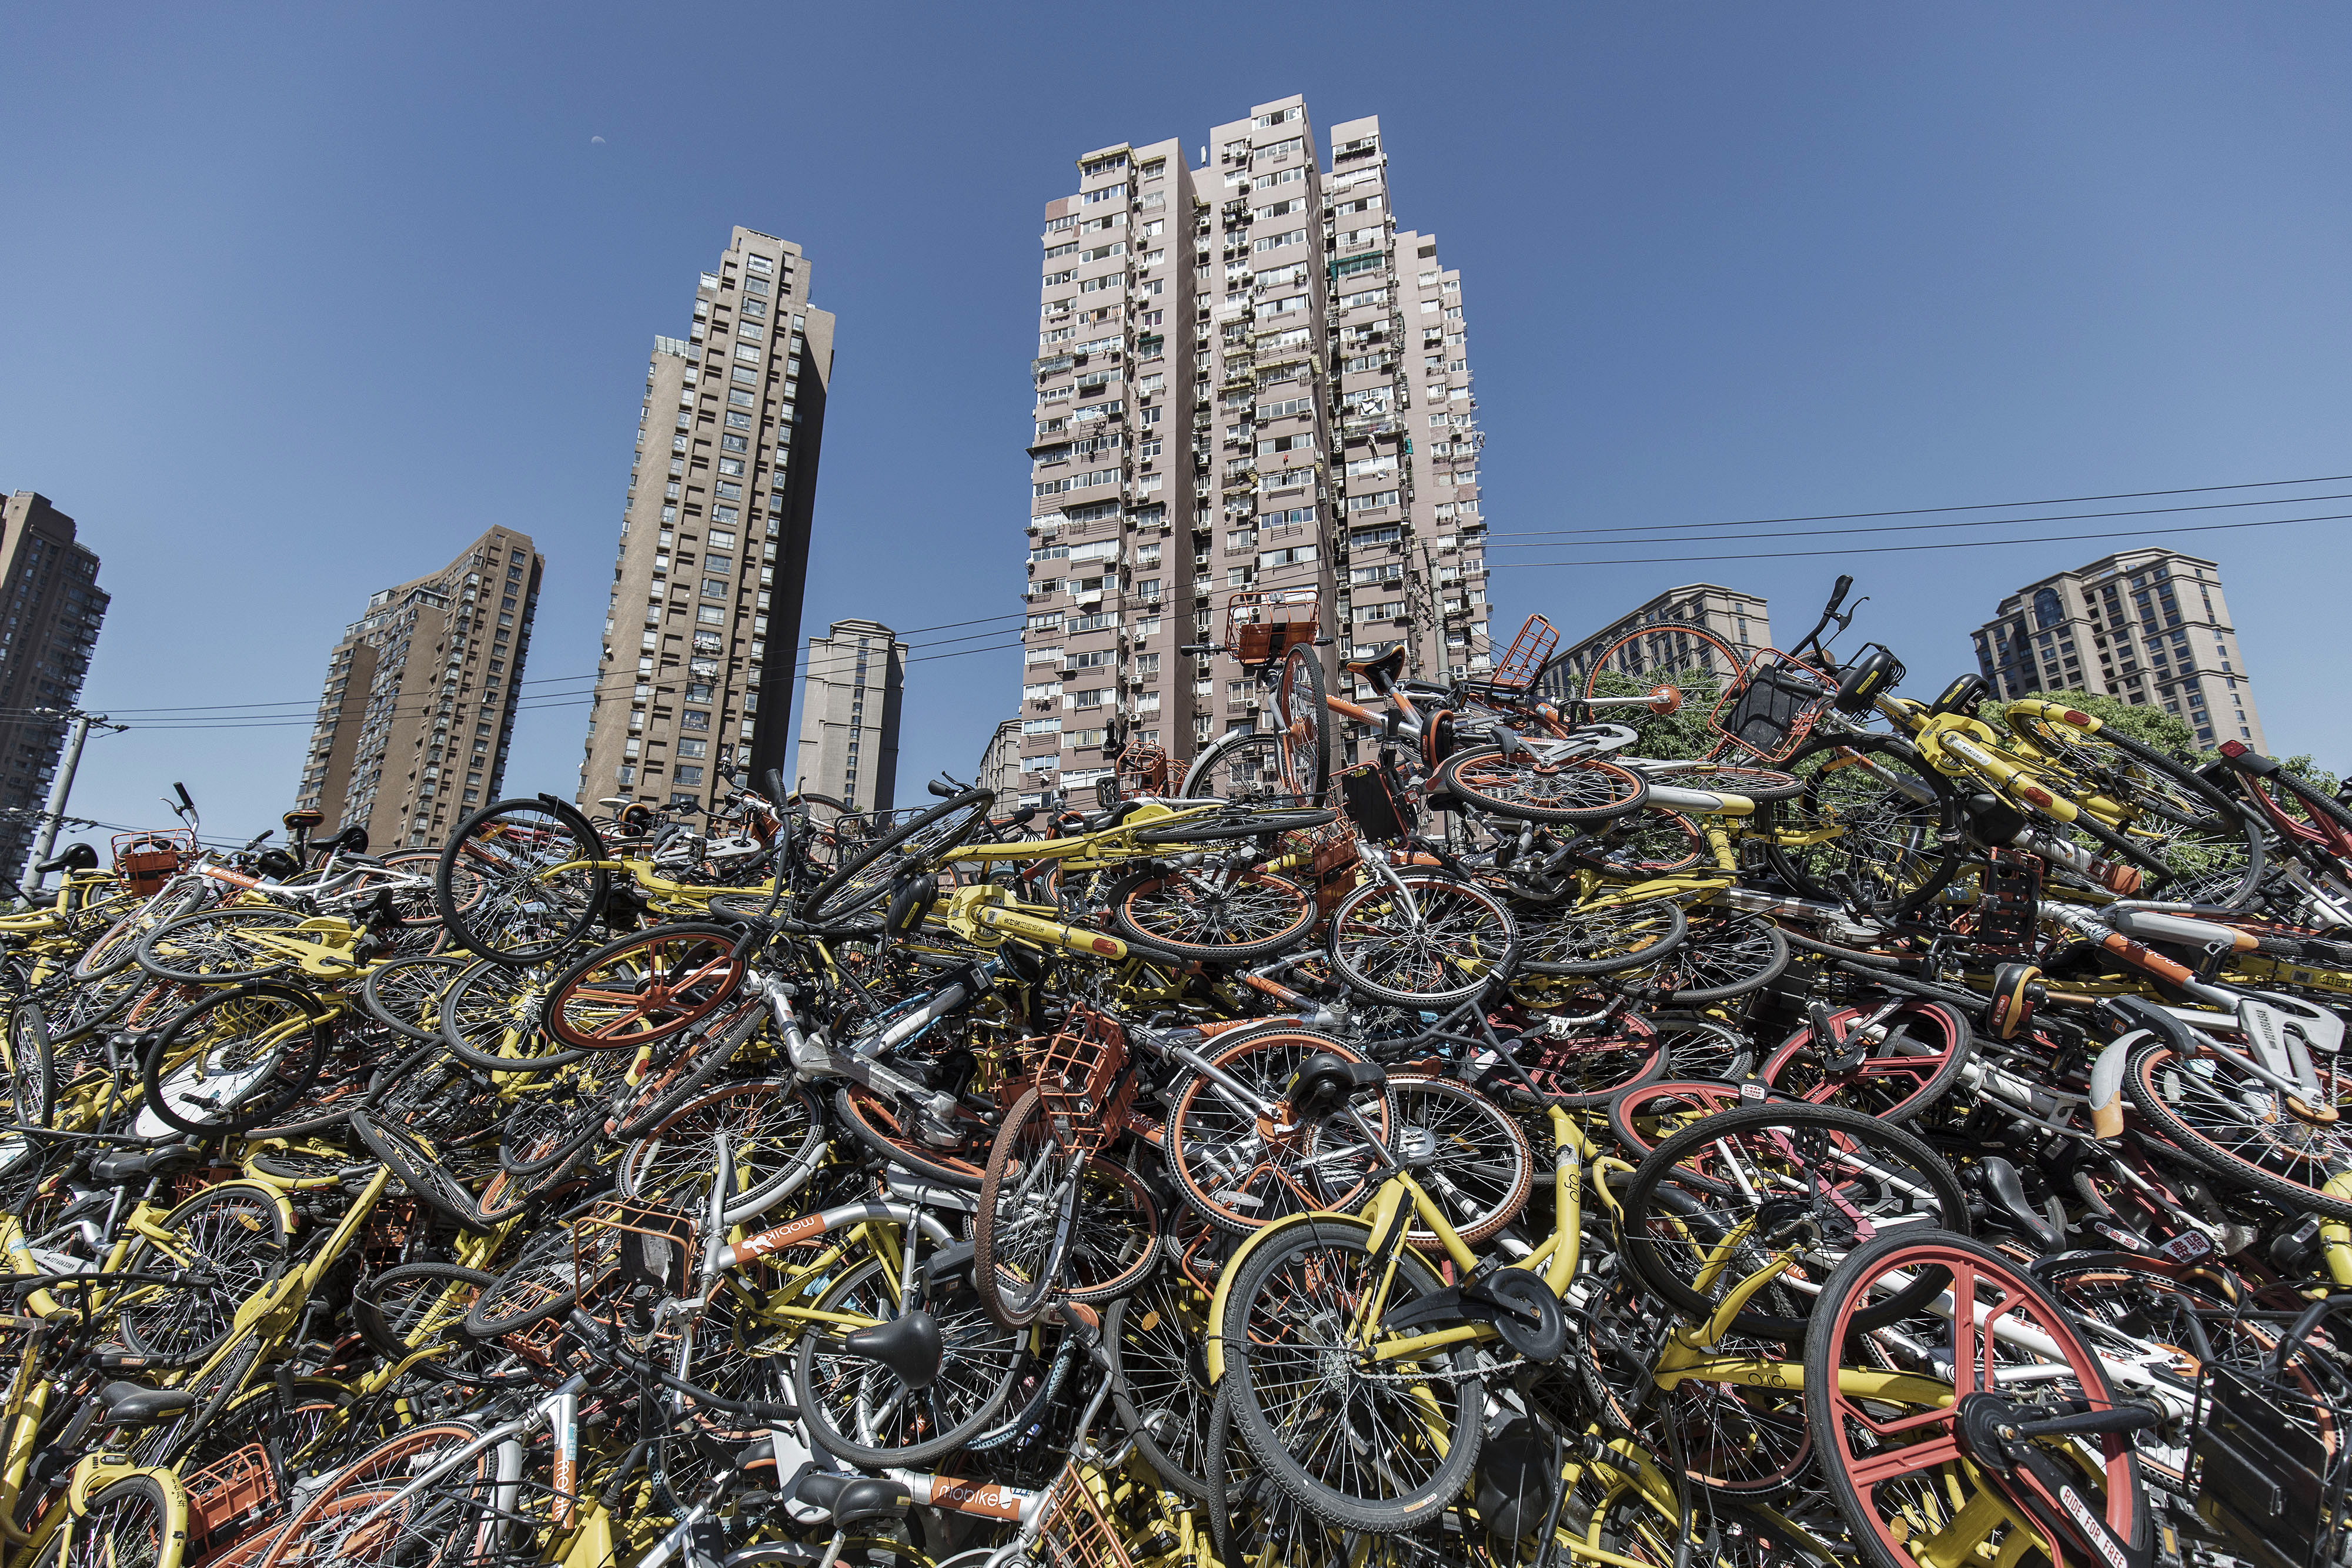 Ride-sharing bicycles sit in a pile in Shanghai, China, on Thursday, Sept. 12, 2017.